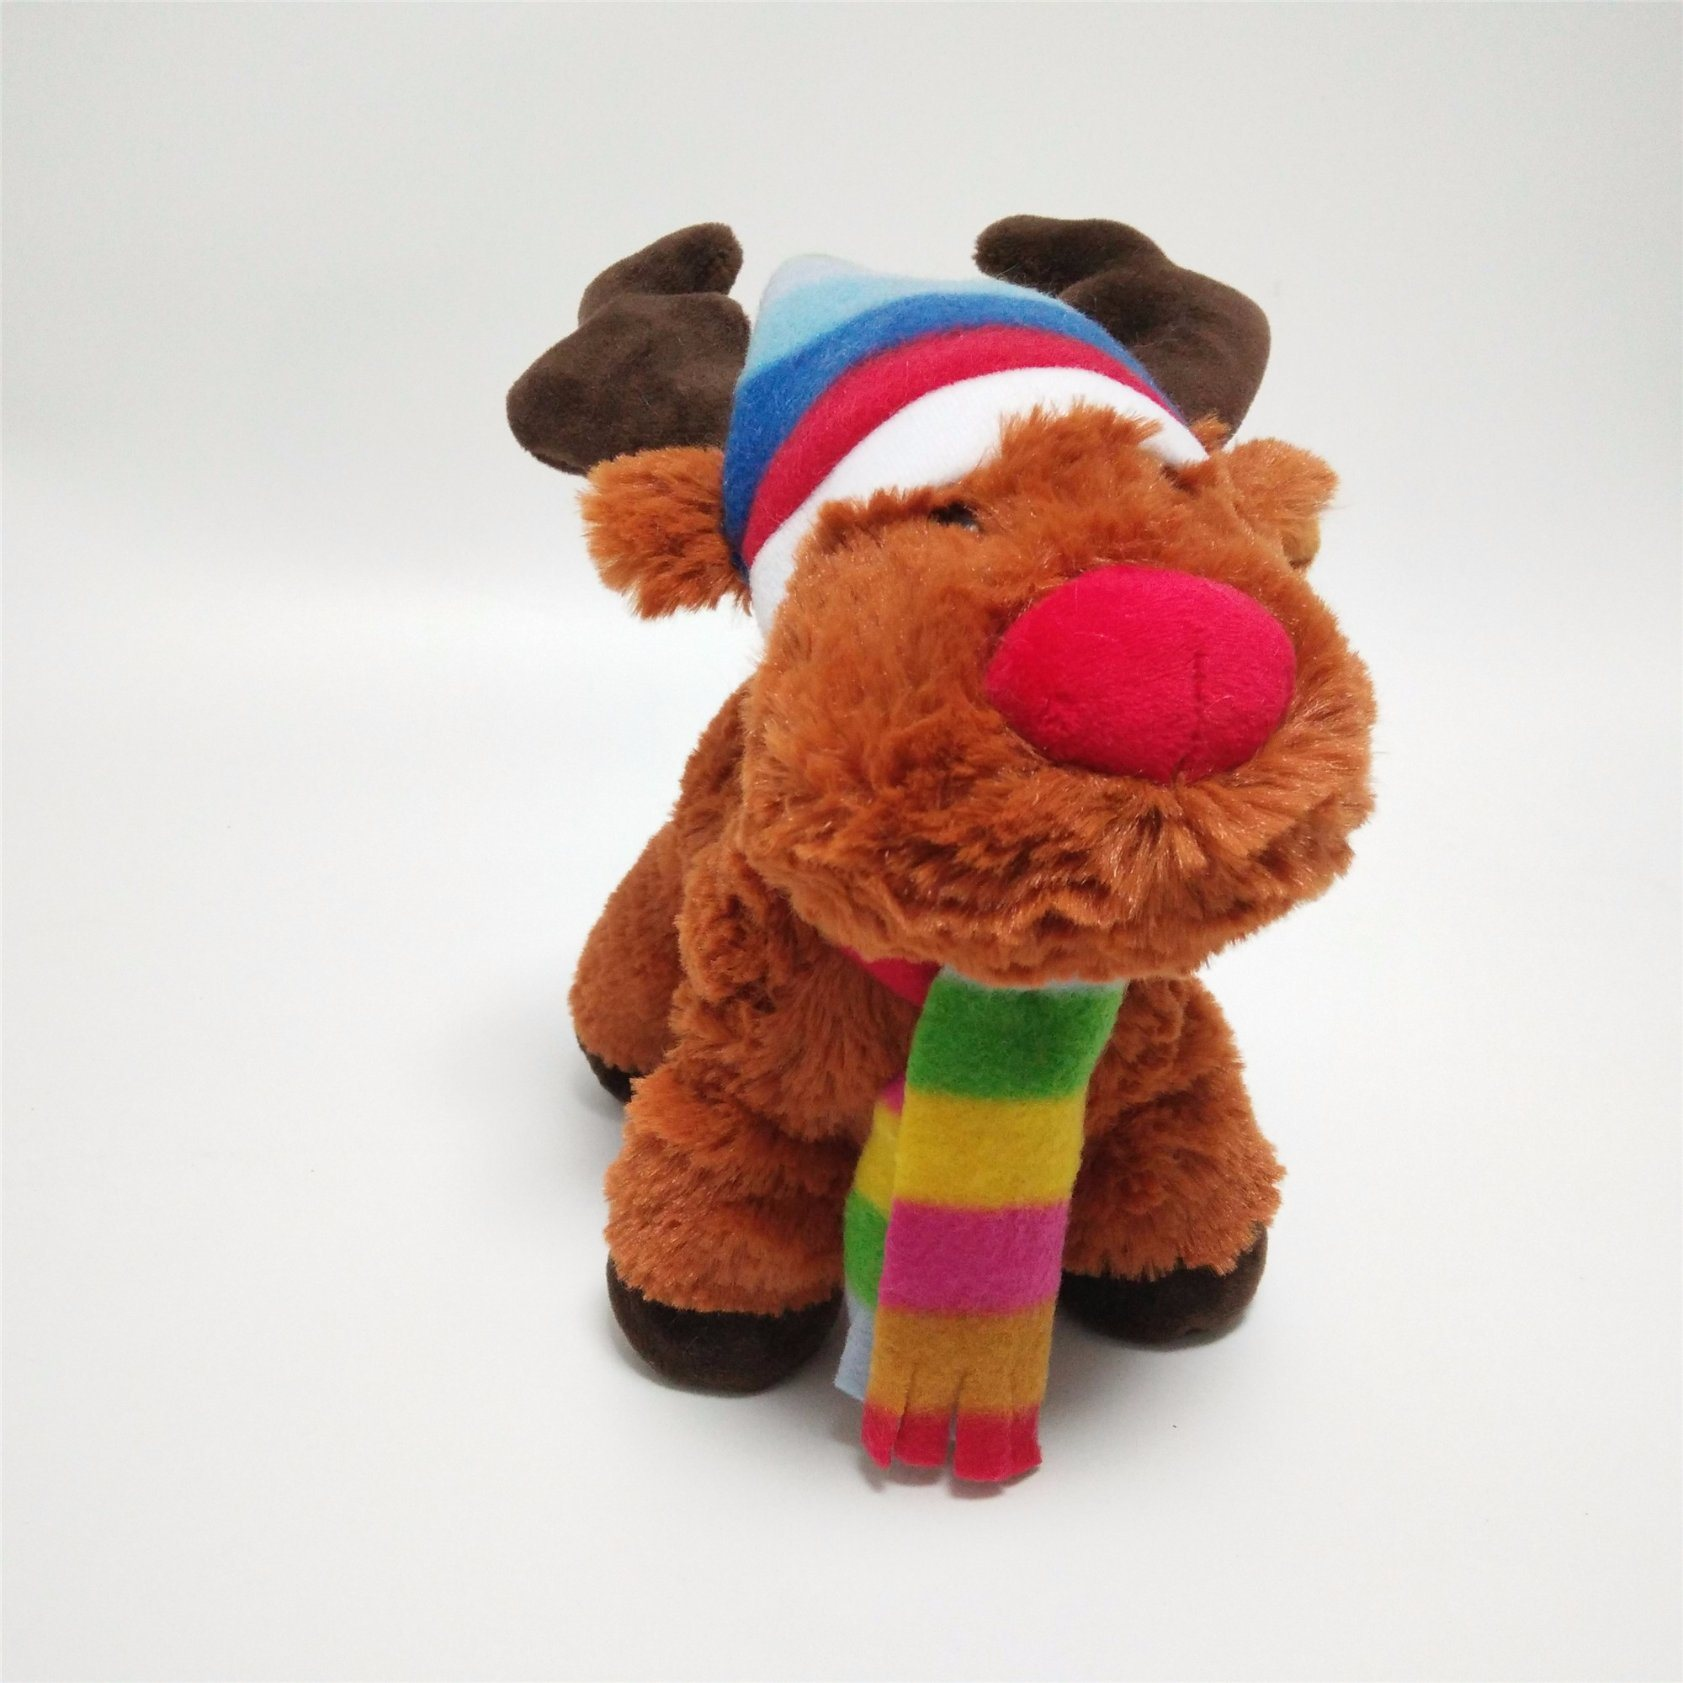 Xmas Snowy Days Gift Friends Moose Lovely Plush Toy